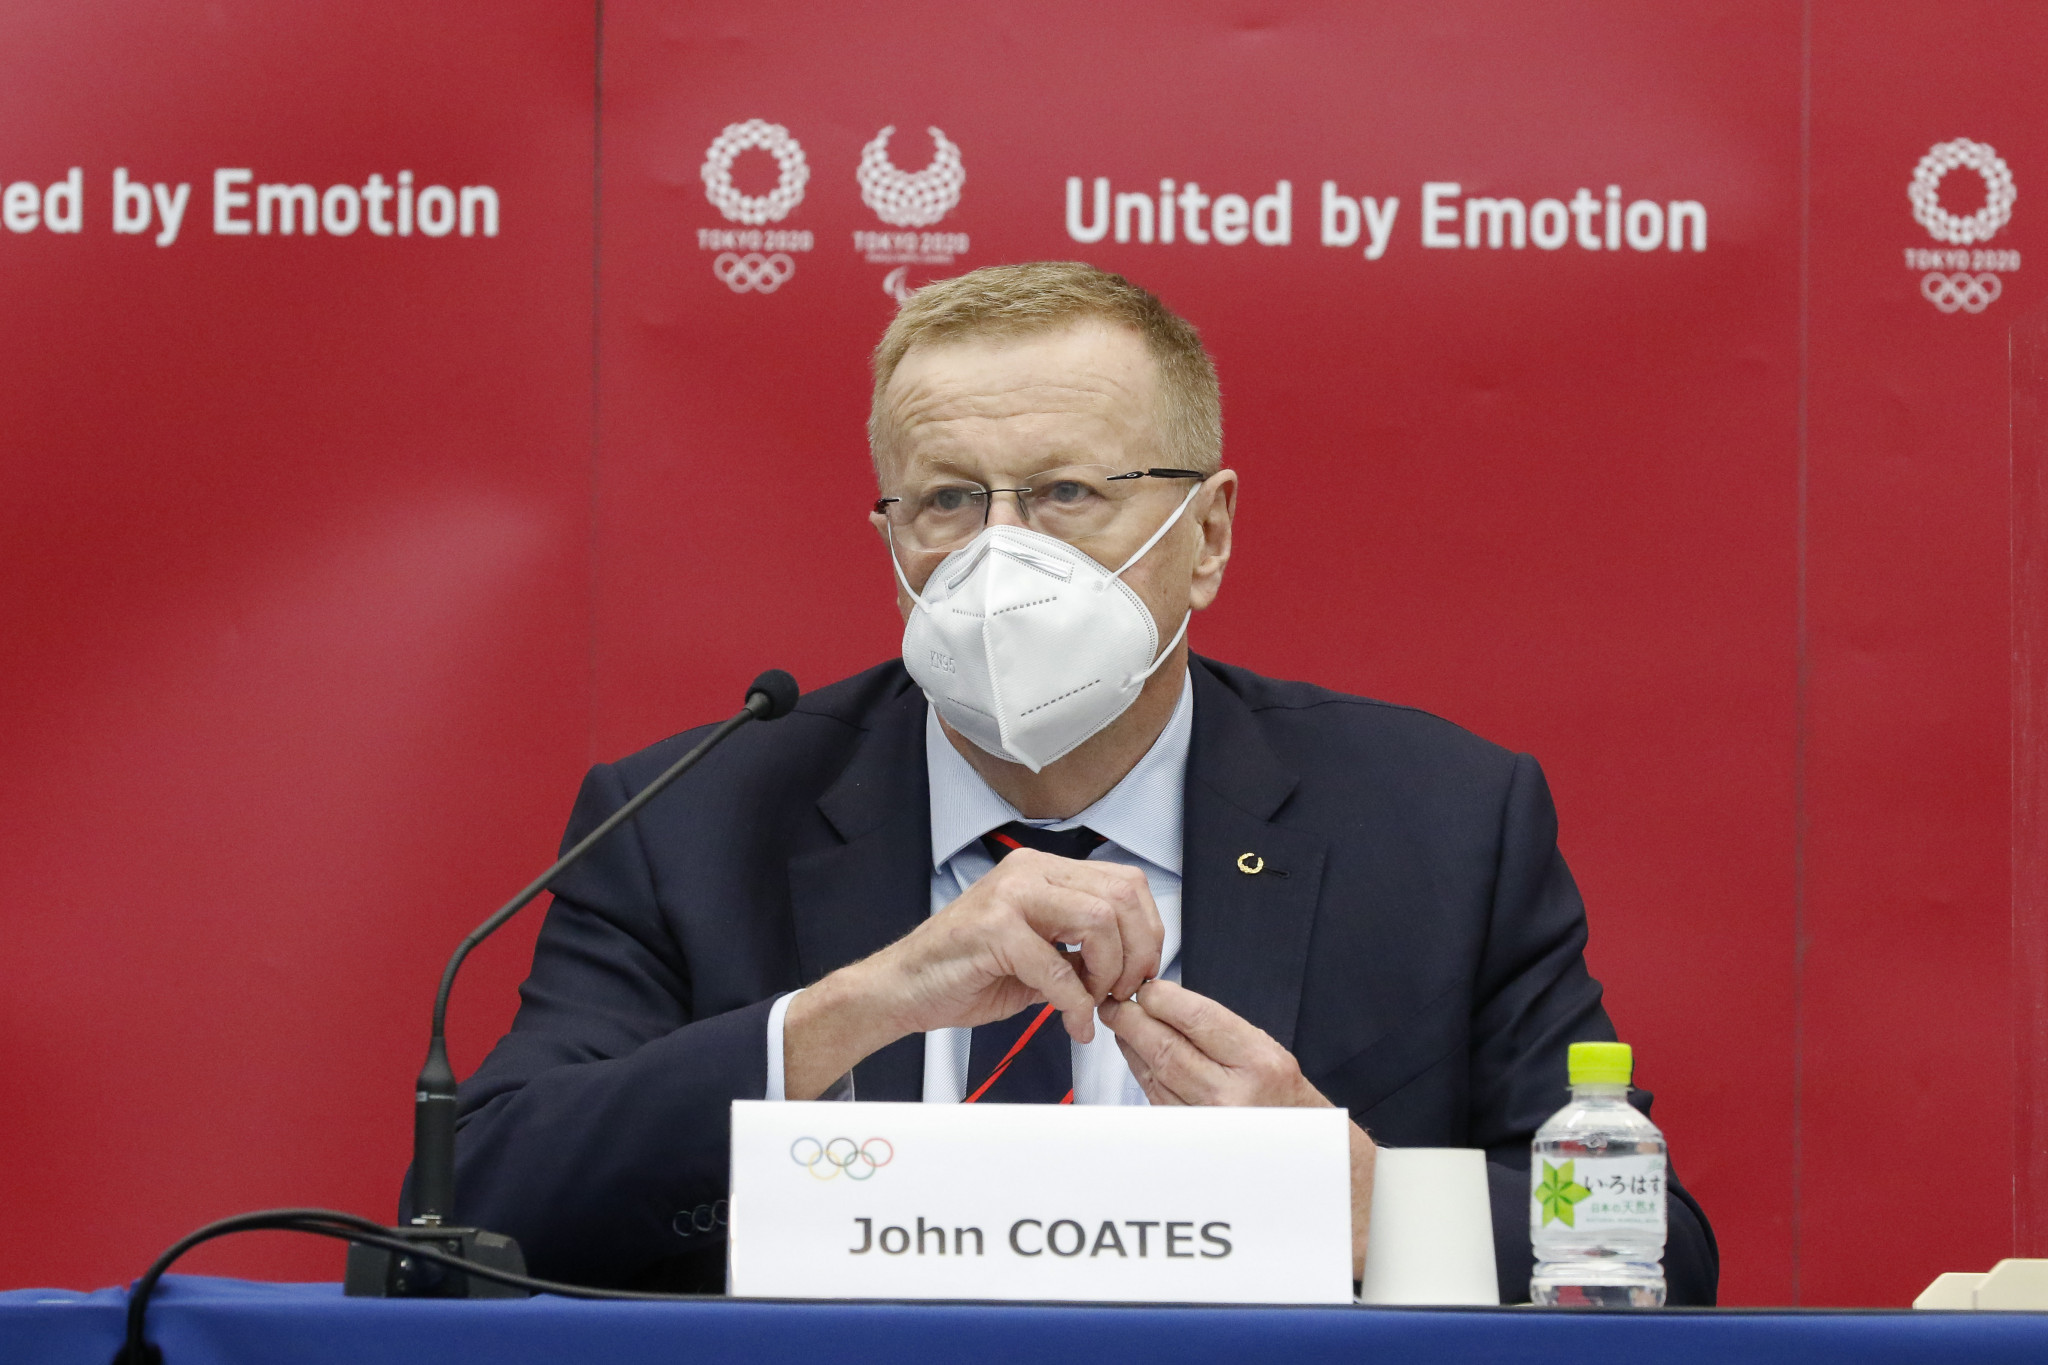 John Coates will update the IOC Session on the Tokyo 2020 Olympic Games, still threatened by the COVID-19 pandemic ©Getty Images